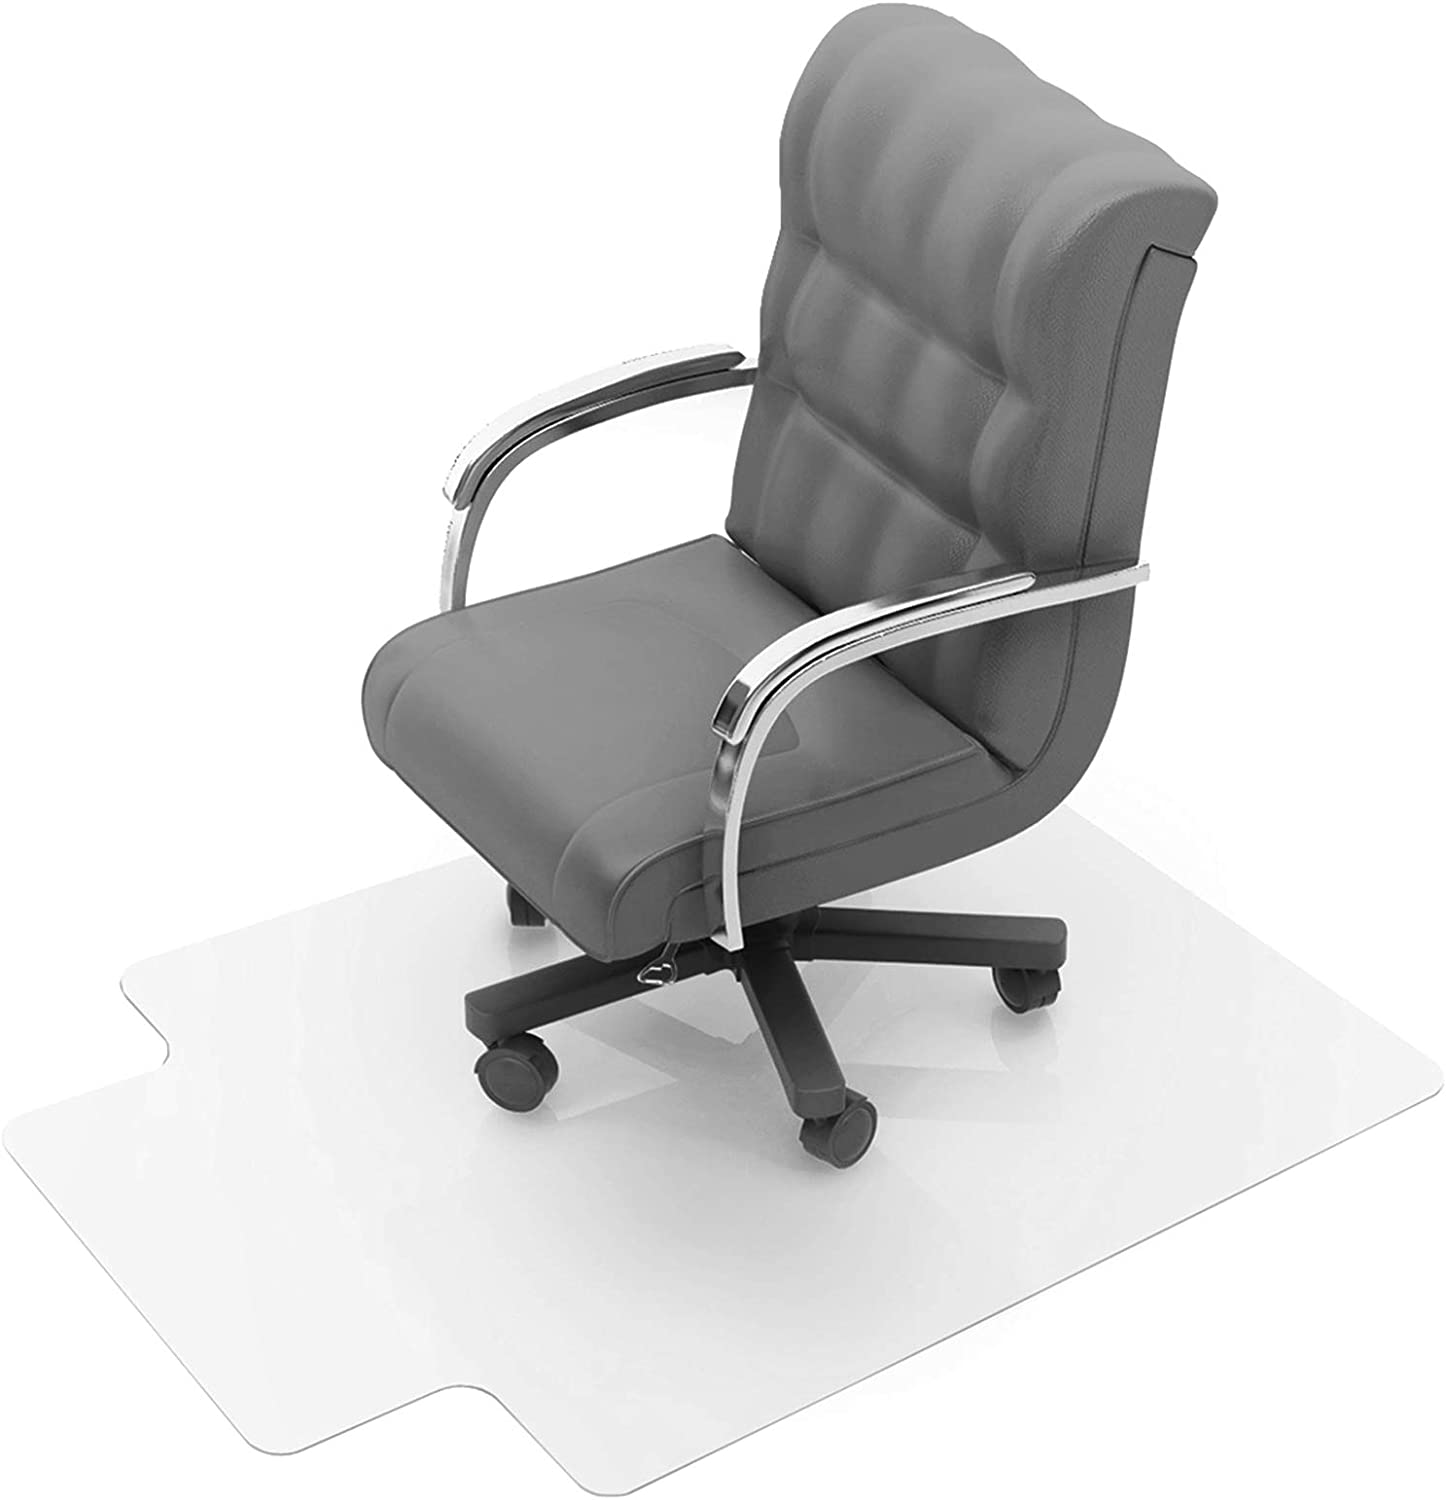 Amazon Com Floortex Polycarbonate Chair Mat With Lip 47 X 35 For Low Medium Pile Carpets Mouse Pads Office Products